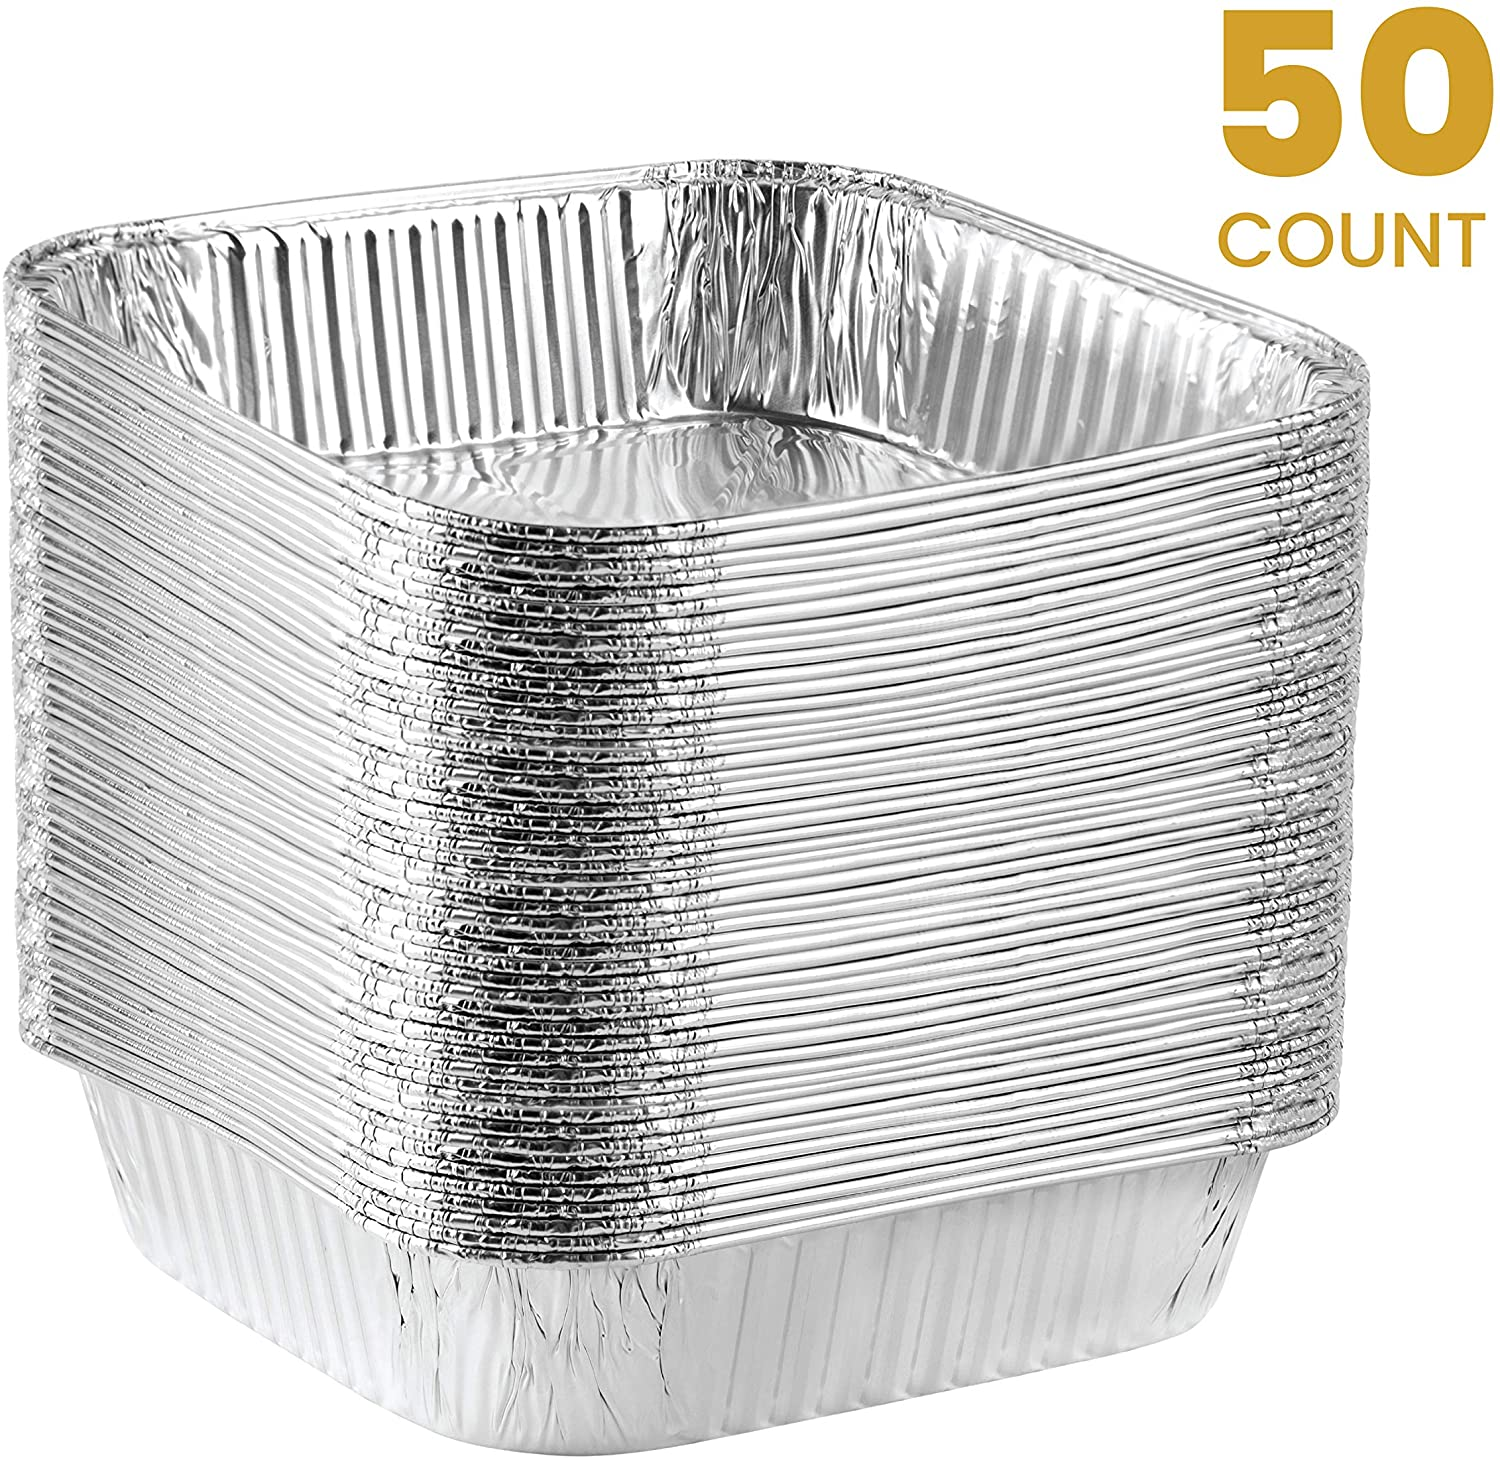 Plasticpro Disposable 8'' X 8'' X 2'' Inch Square Aluminum Tin Foil Baking Pans Bakeware - Cookware Perfect for Baking Cakes, Breads, Brownies, Bread, Meatloaf, Lasagna, Pack of 50